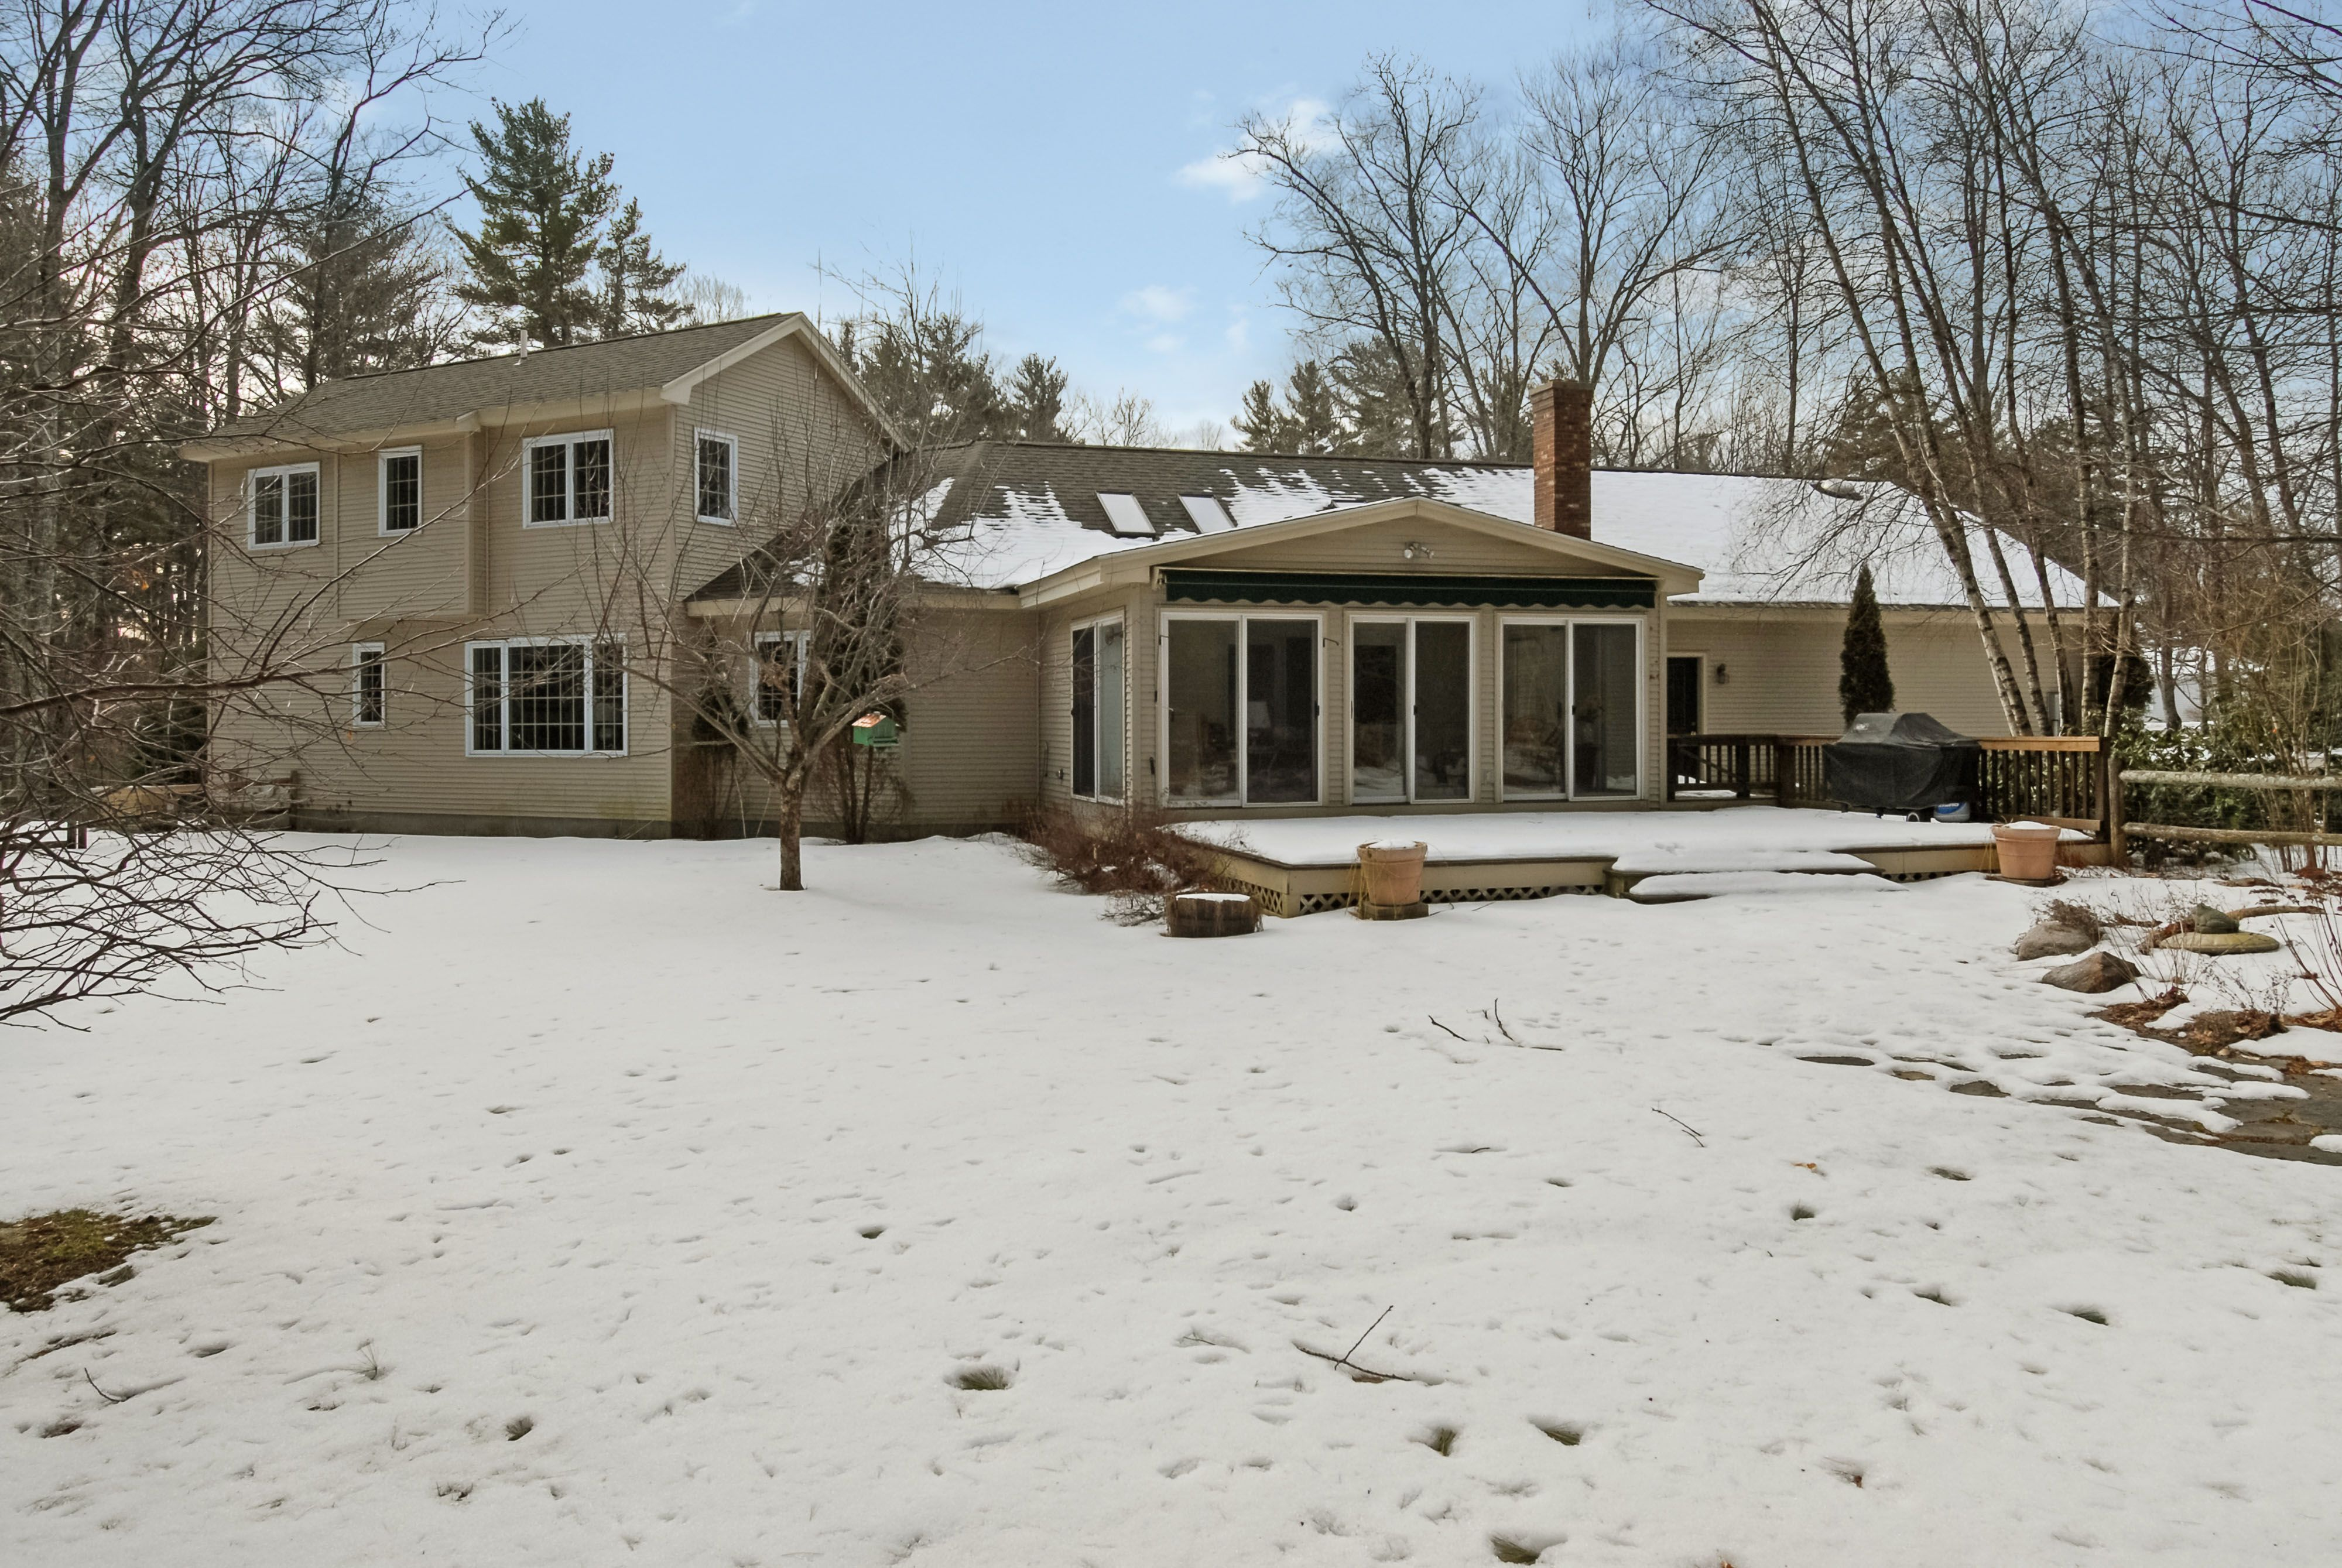 93 Spruce Road Wolfeboro Nh Real Estate Mls 4469286 Adam Dow House Air Conditioning Four Season Sunroom Large Backyard